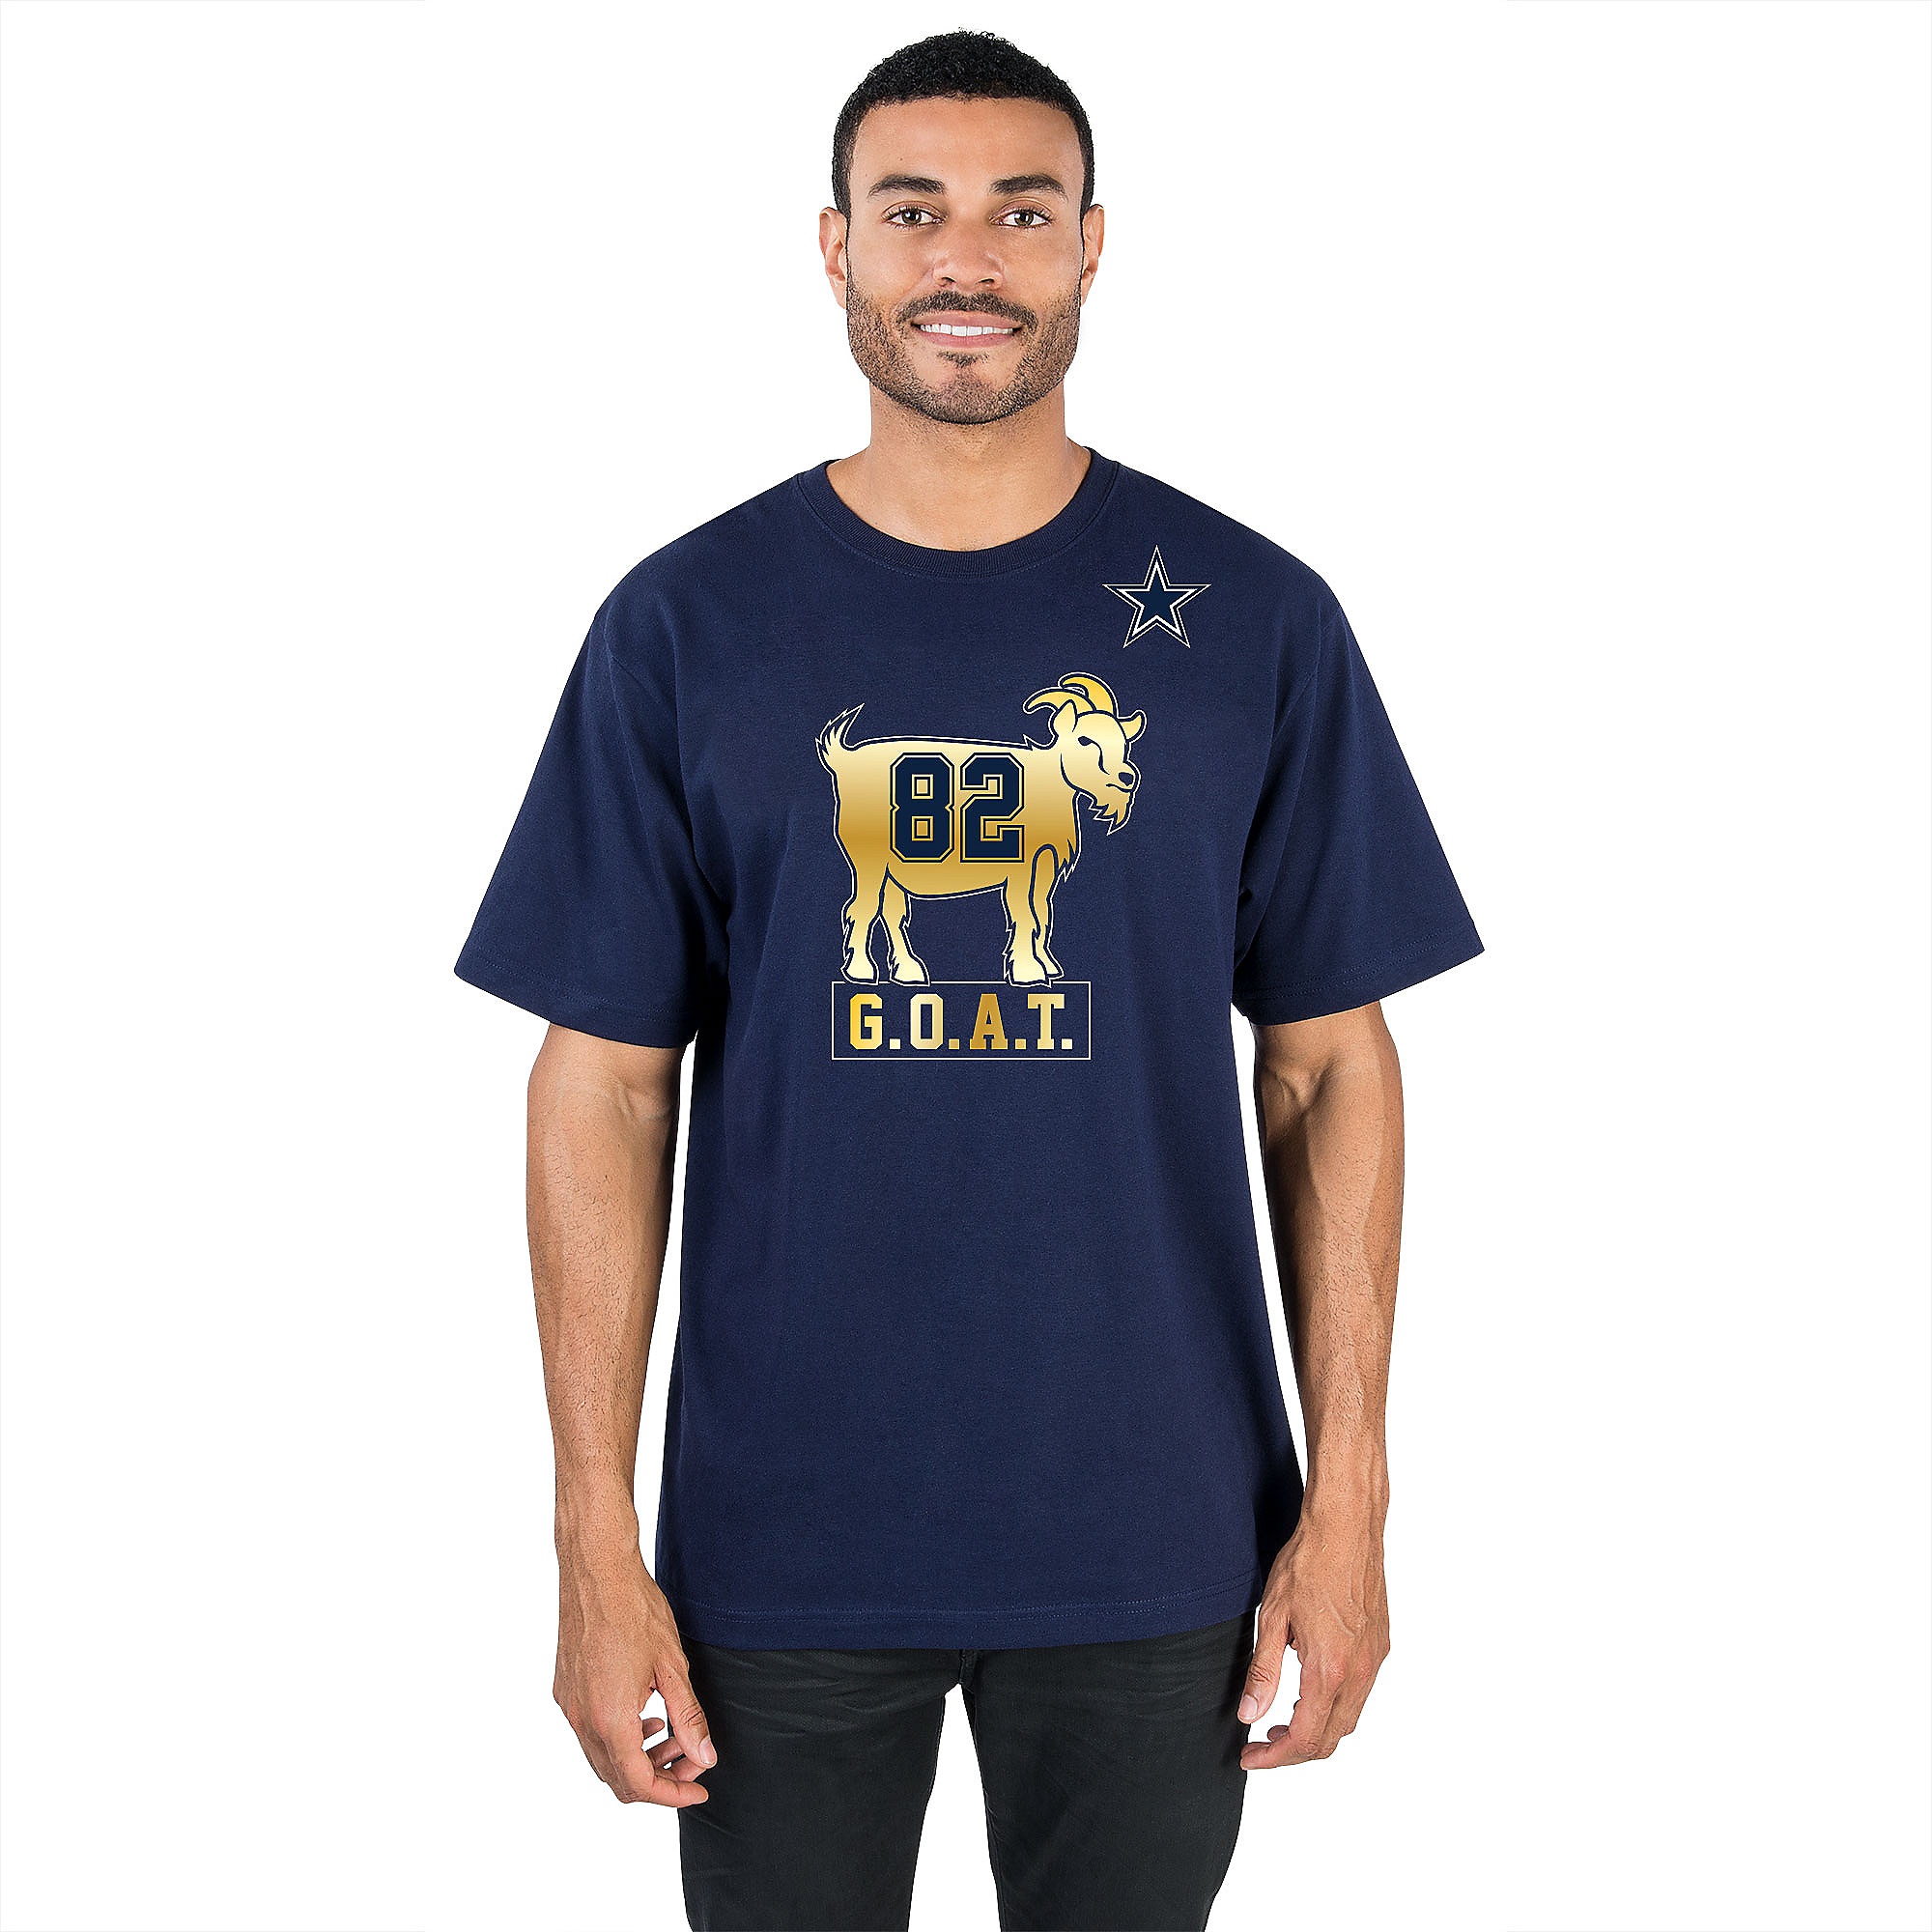 Dallas Cowboys Jason Witten G.O.A.T 82 Tee